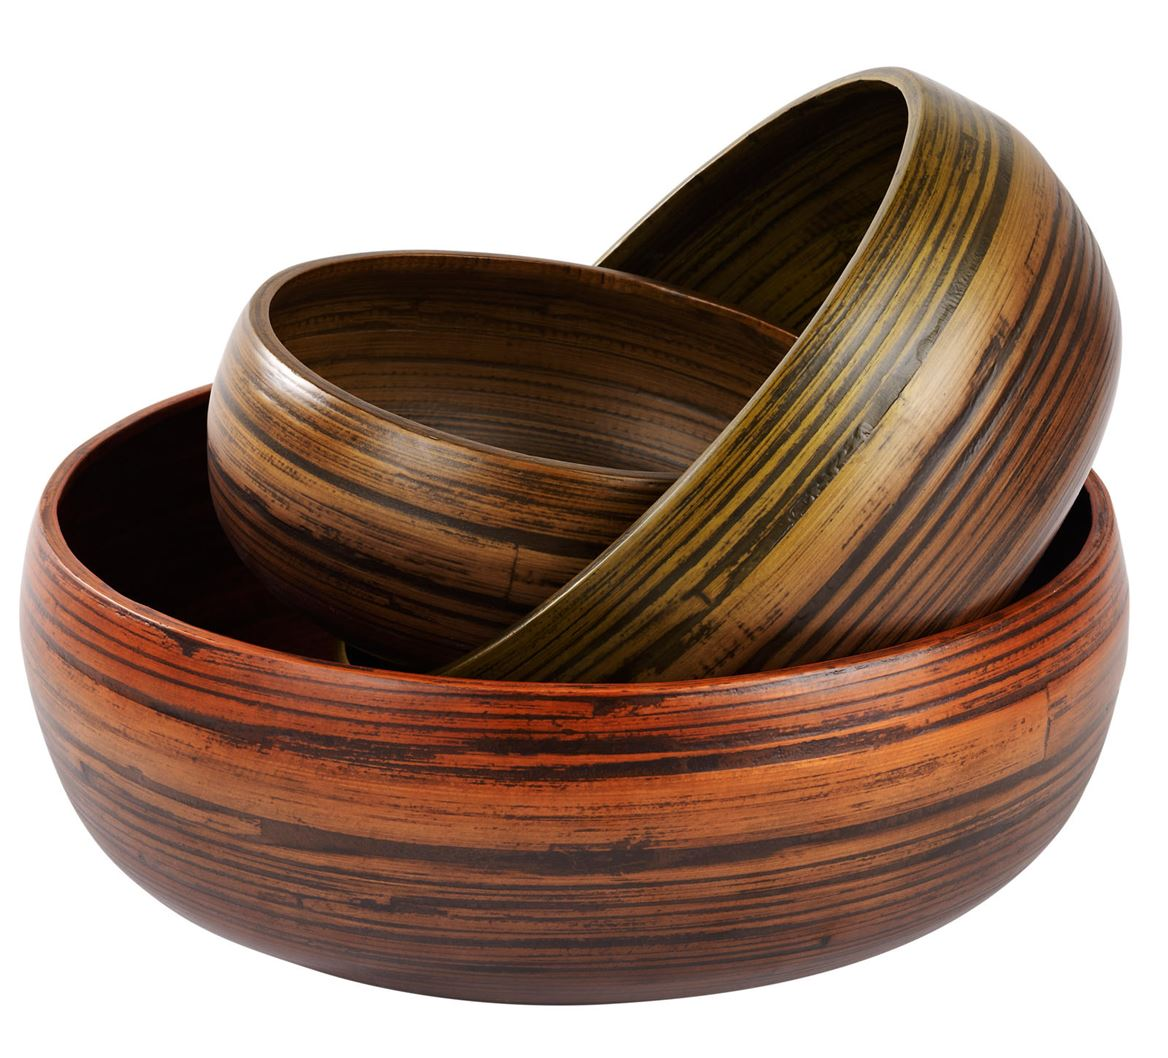 HOME BAMBOO Fuente decorativa M marrón A 12 cm; Ø 28 cm_home-bamboo-fuente-decorativa-m-marrón-a-12-cm;-ø-28-cm